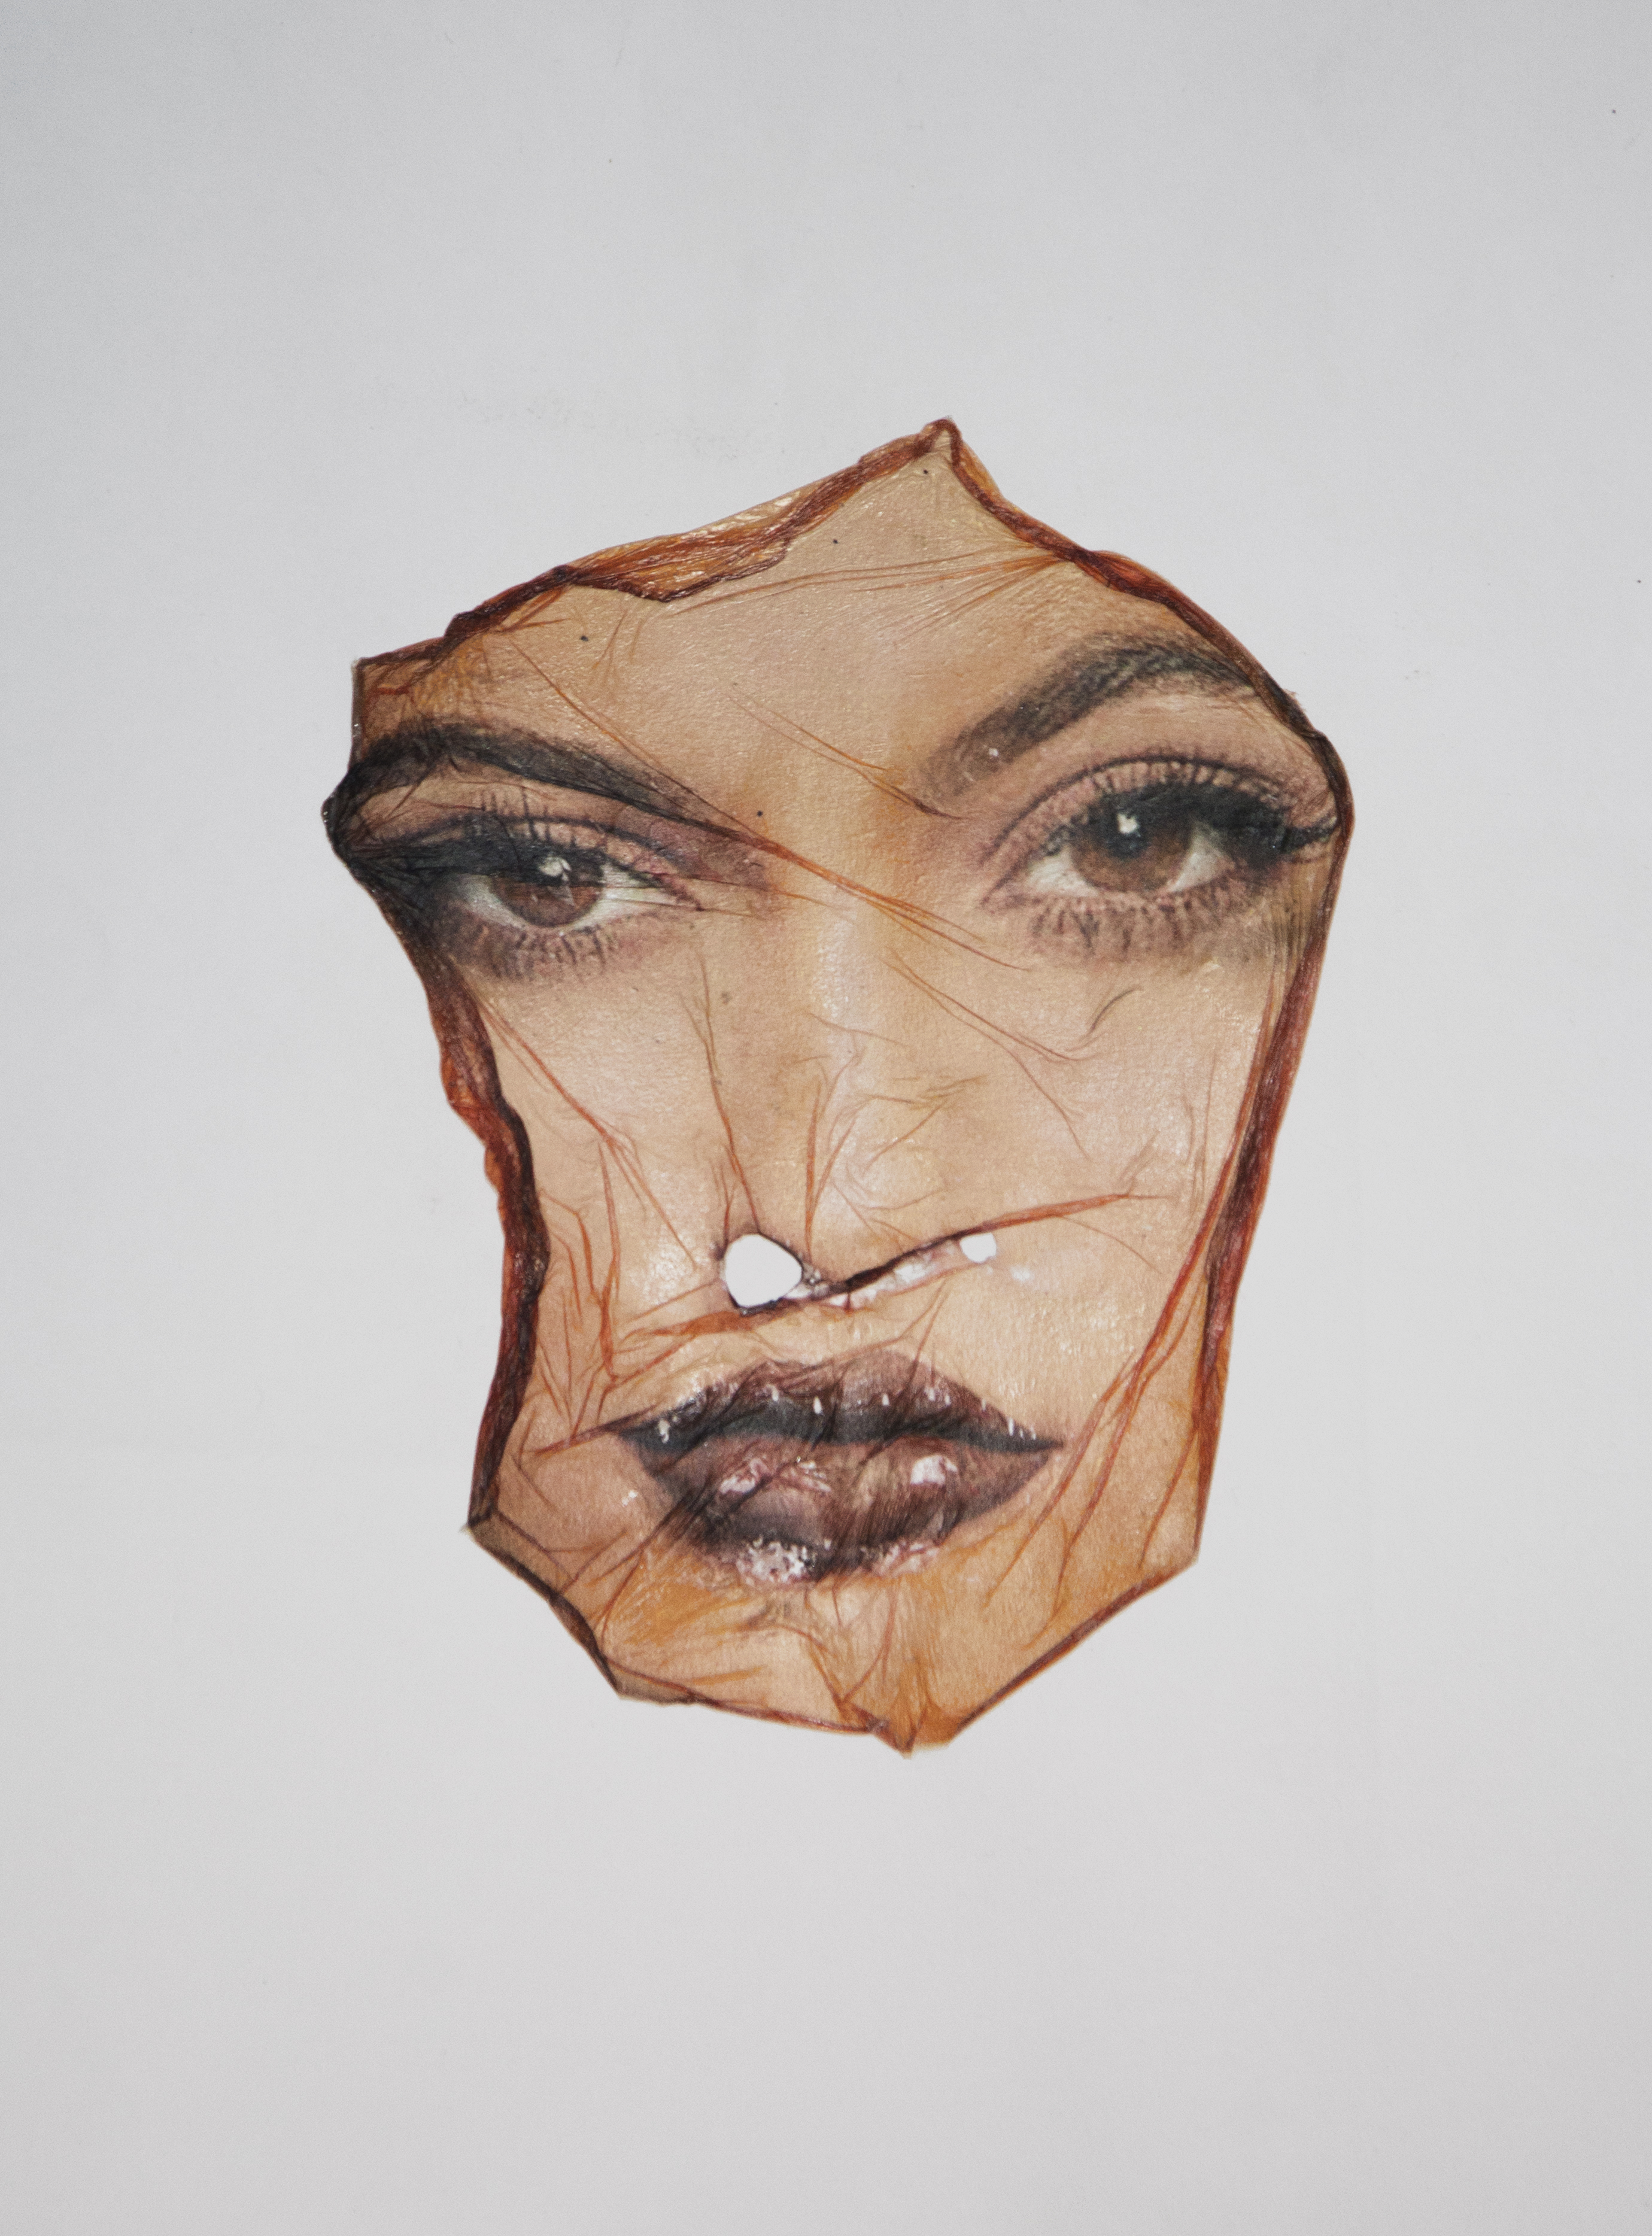 image of a warped plastic texture or fabric printed with Kylie Jenner's face